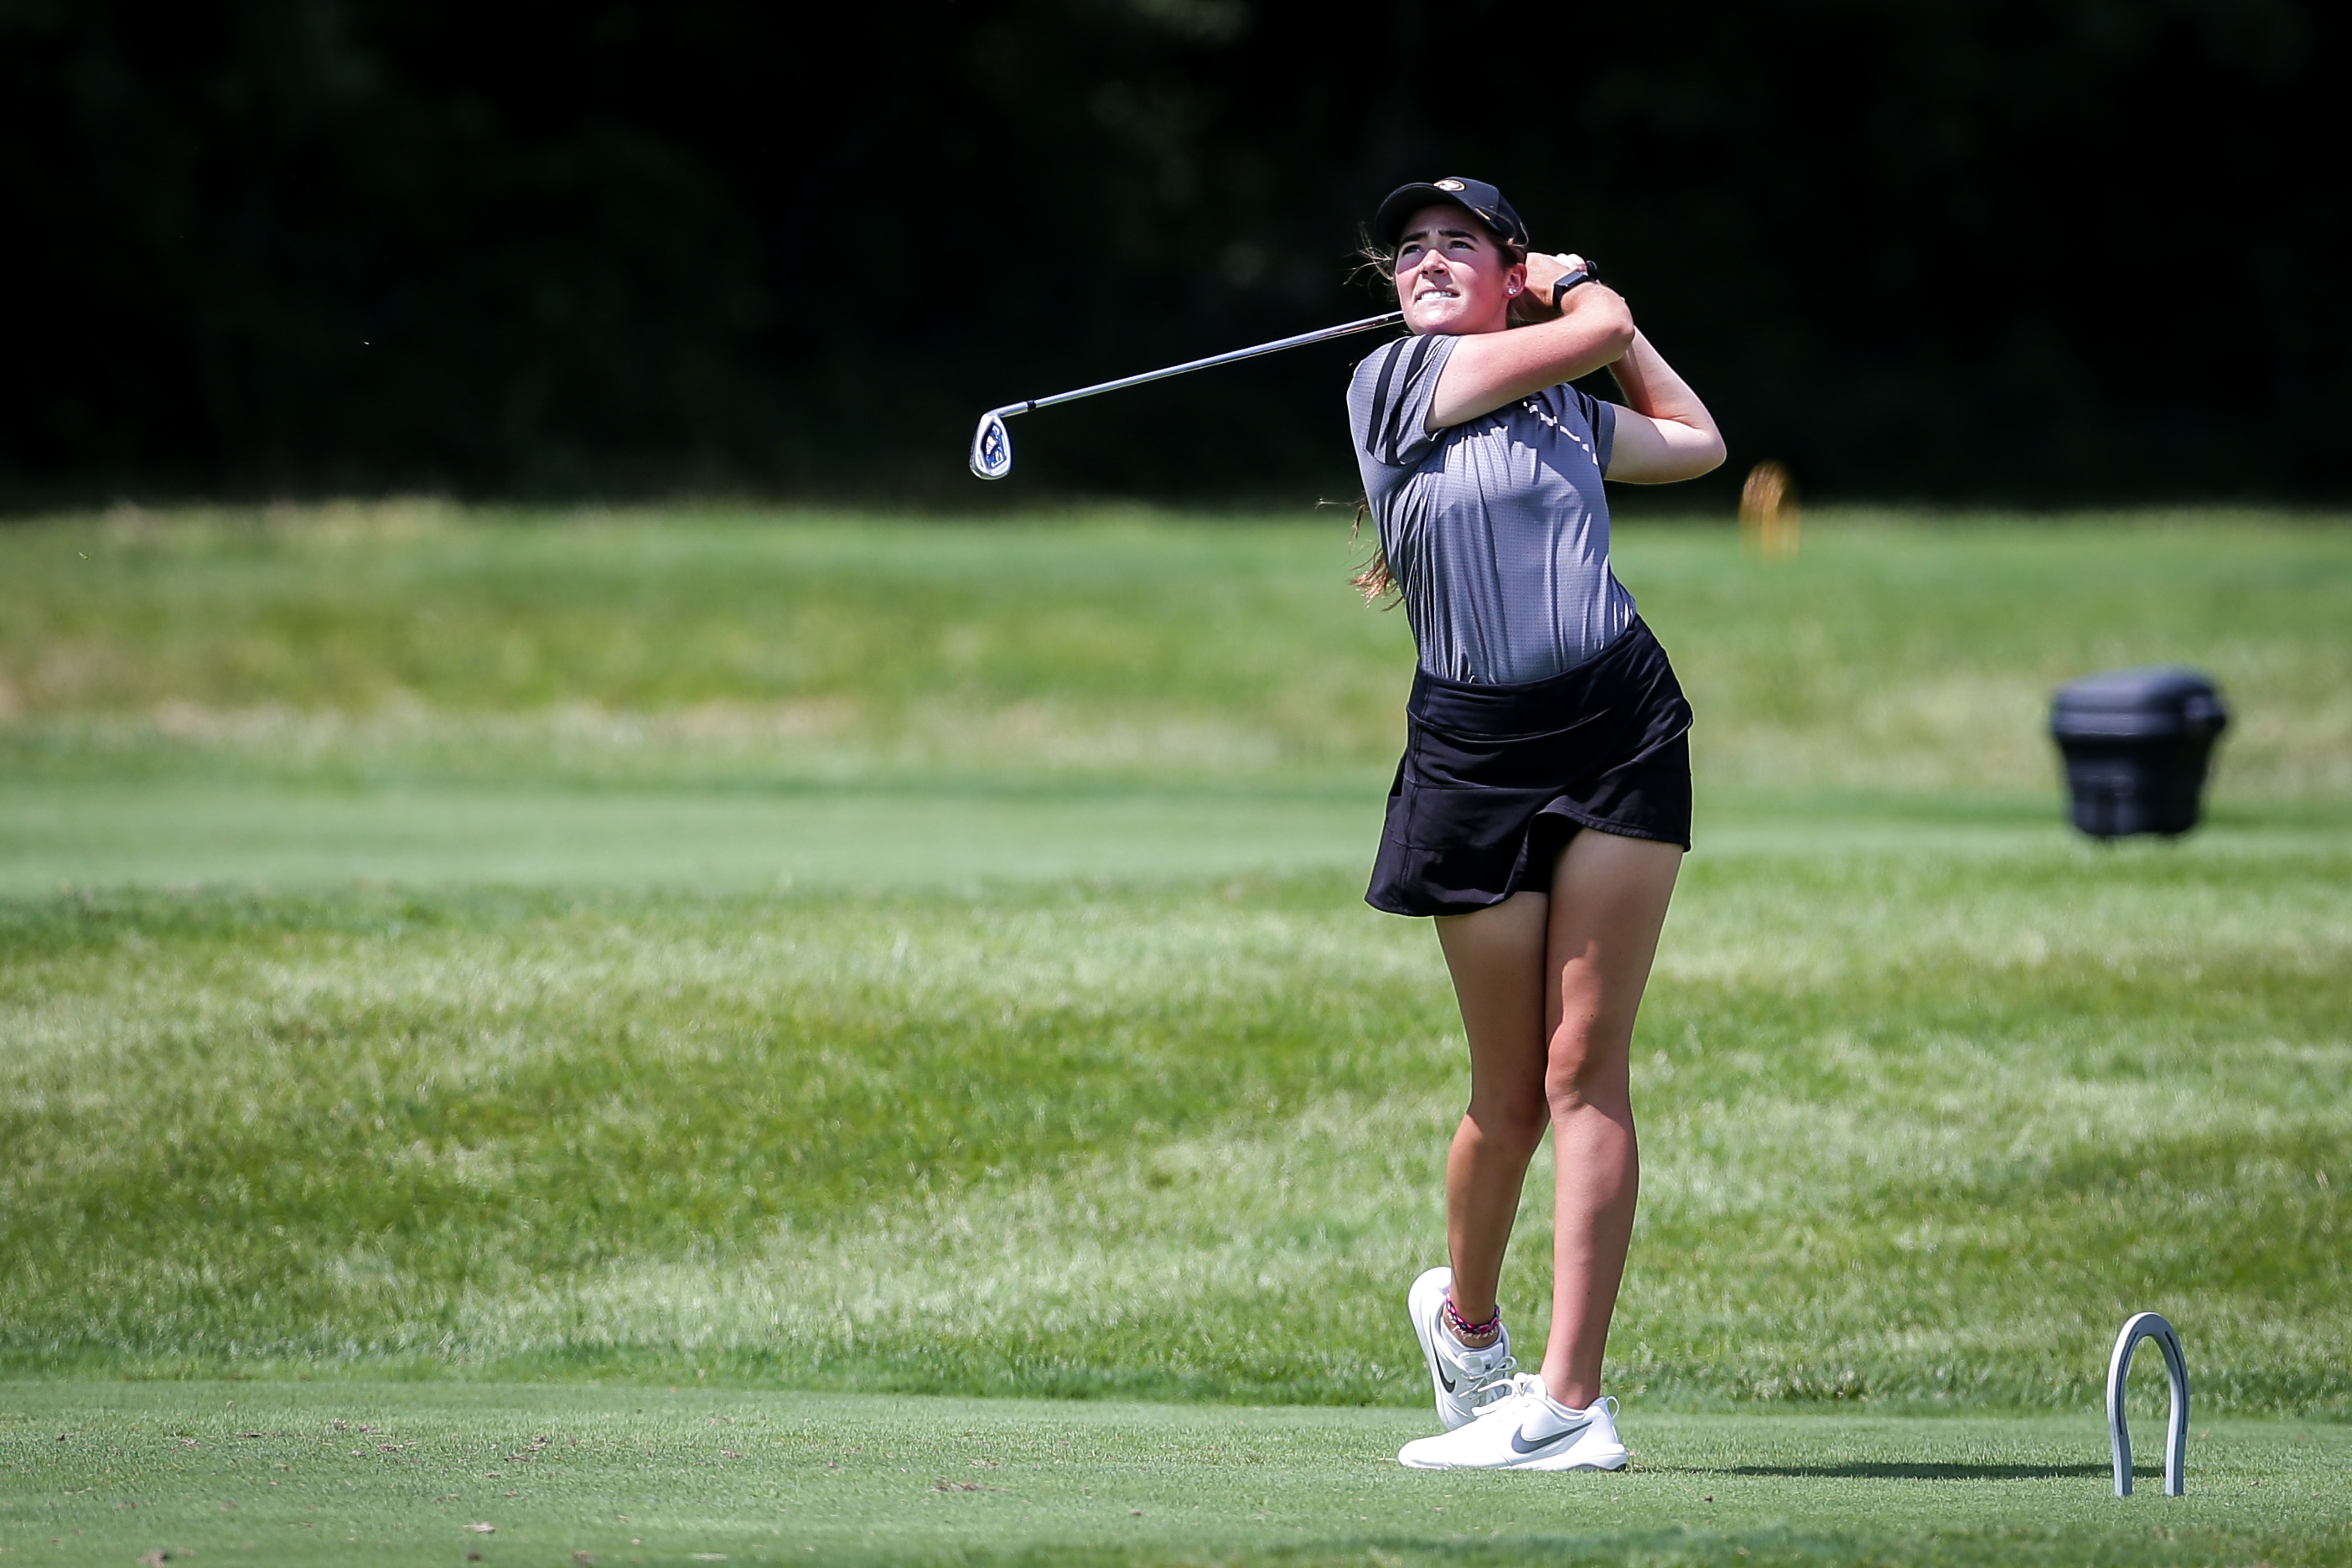 Women S Golf Places Two In Top 20 At Mason Rudolph University Of Missouri Athletics